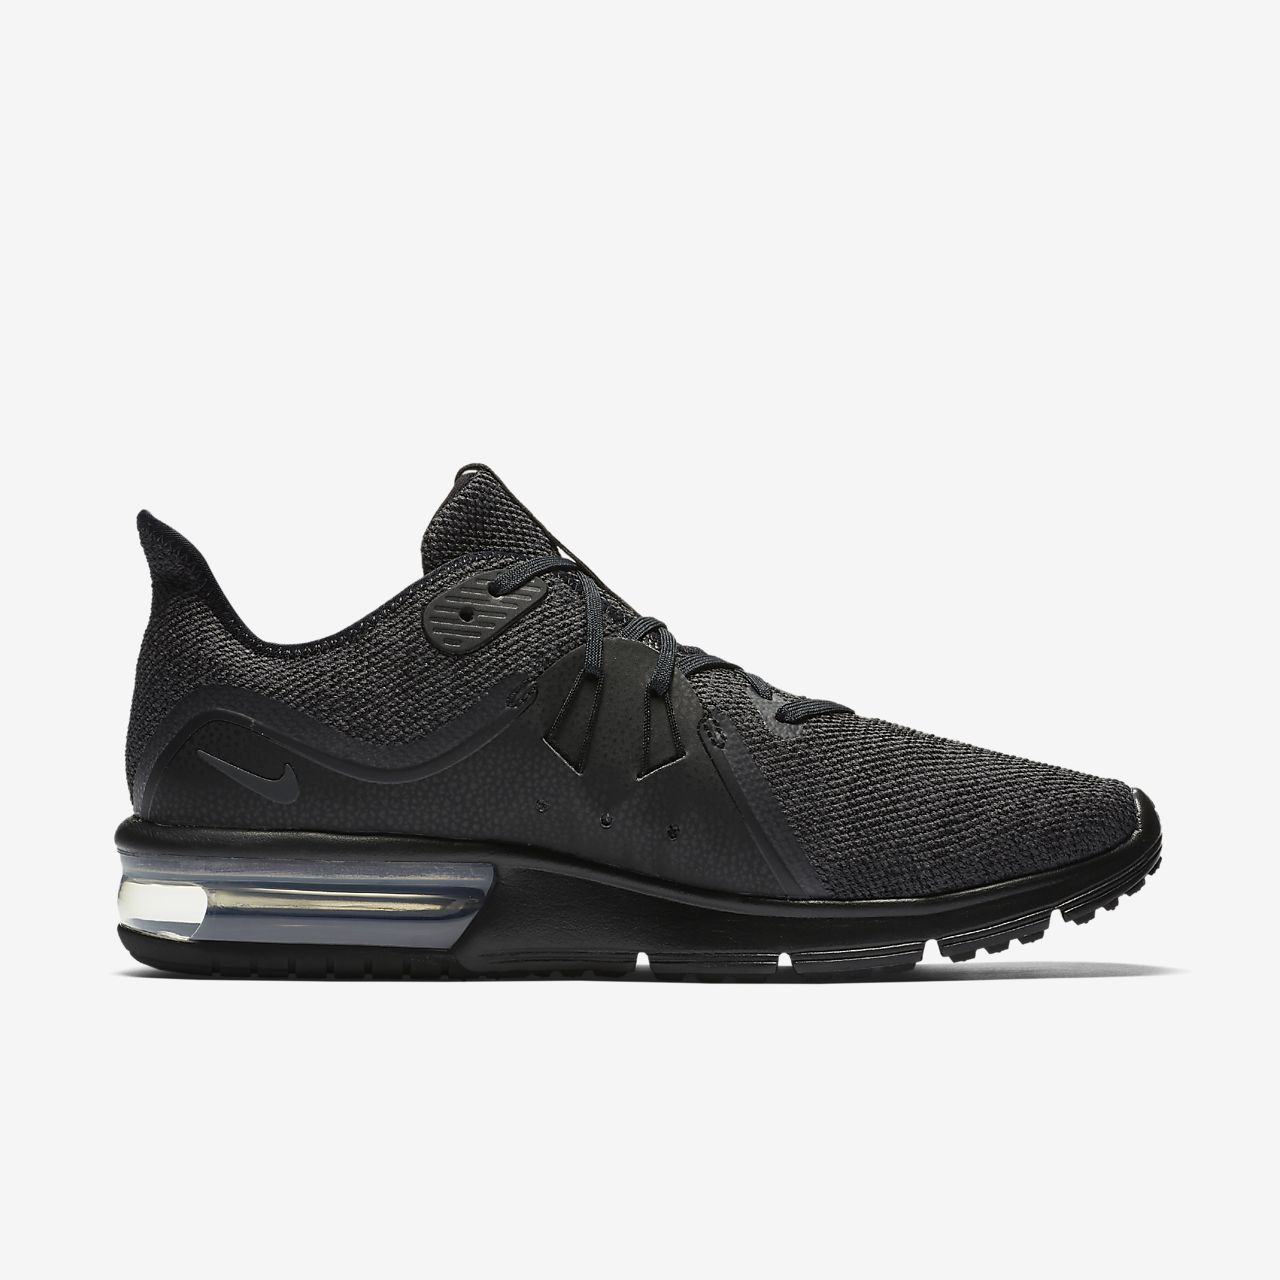 huge selection of d45c3 f79d5 Chaussure pour Homme. Nike Air Max Sequent 3